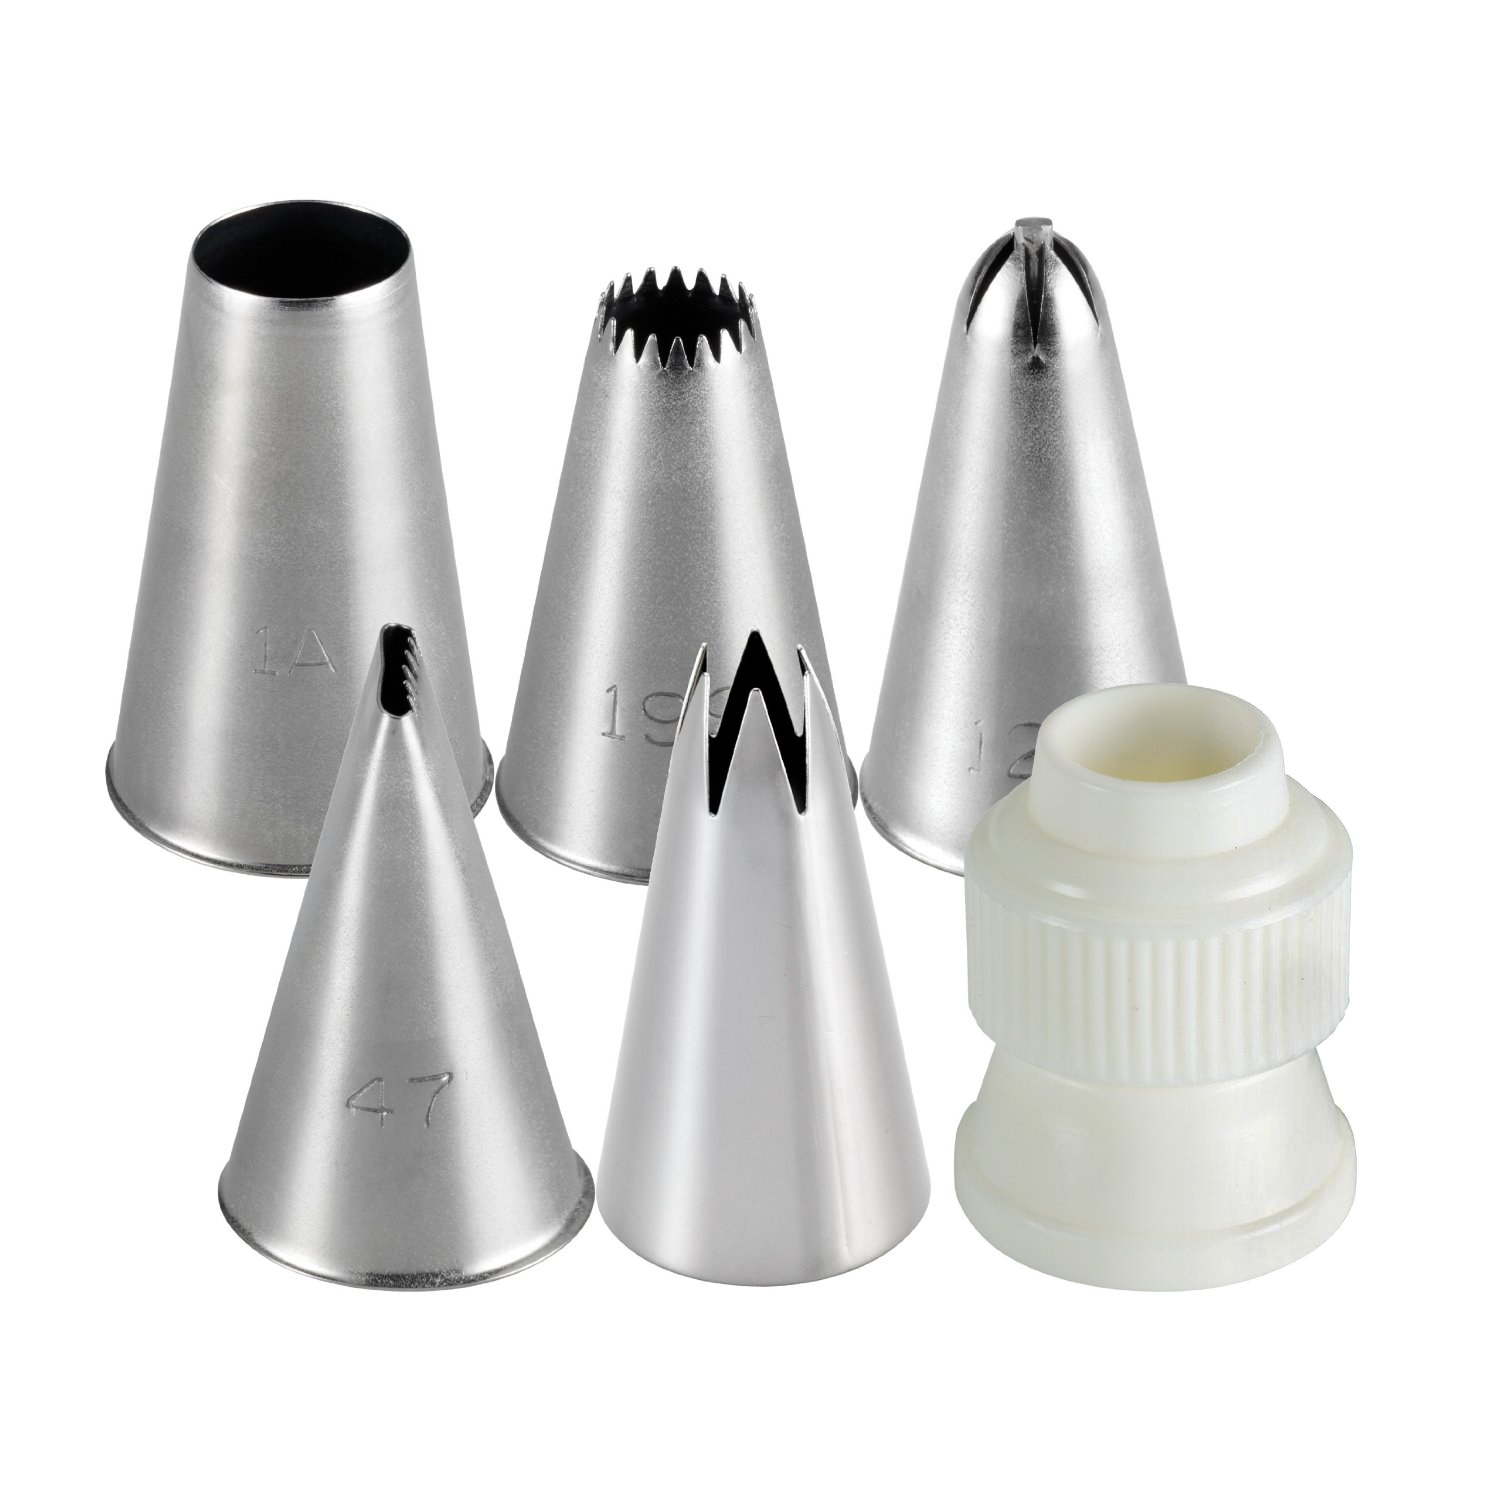 Cake Boss Stainless Steel 6 Piece Decorating Tip Set